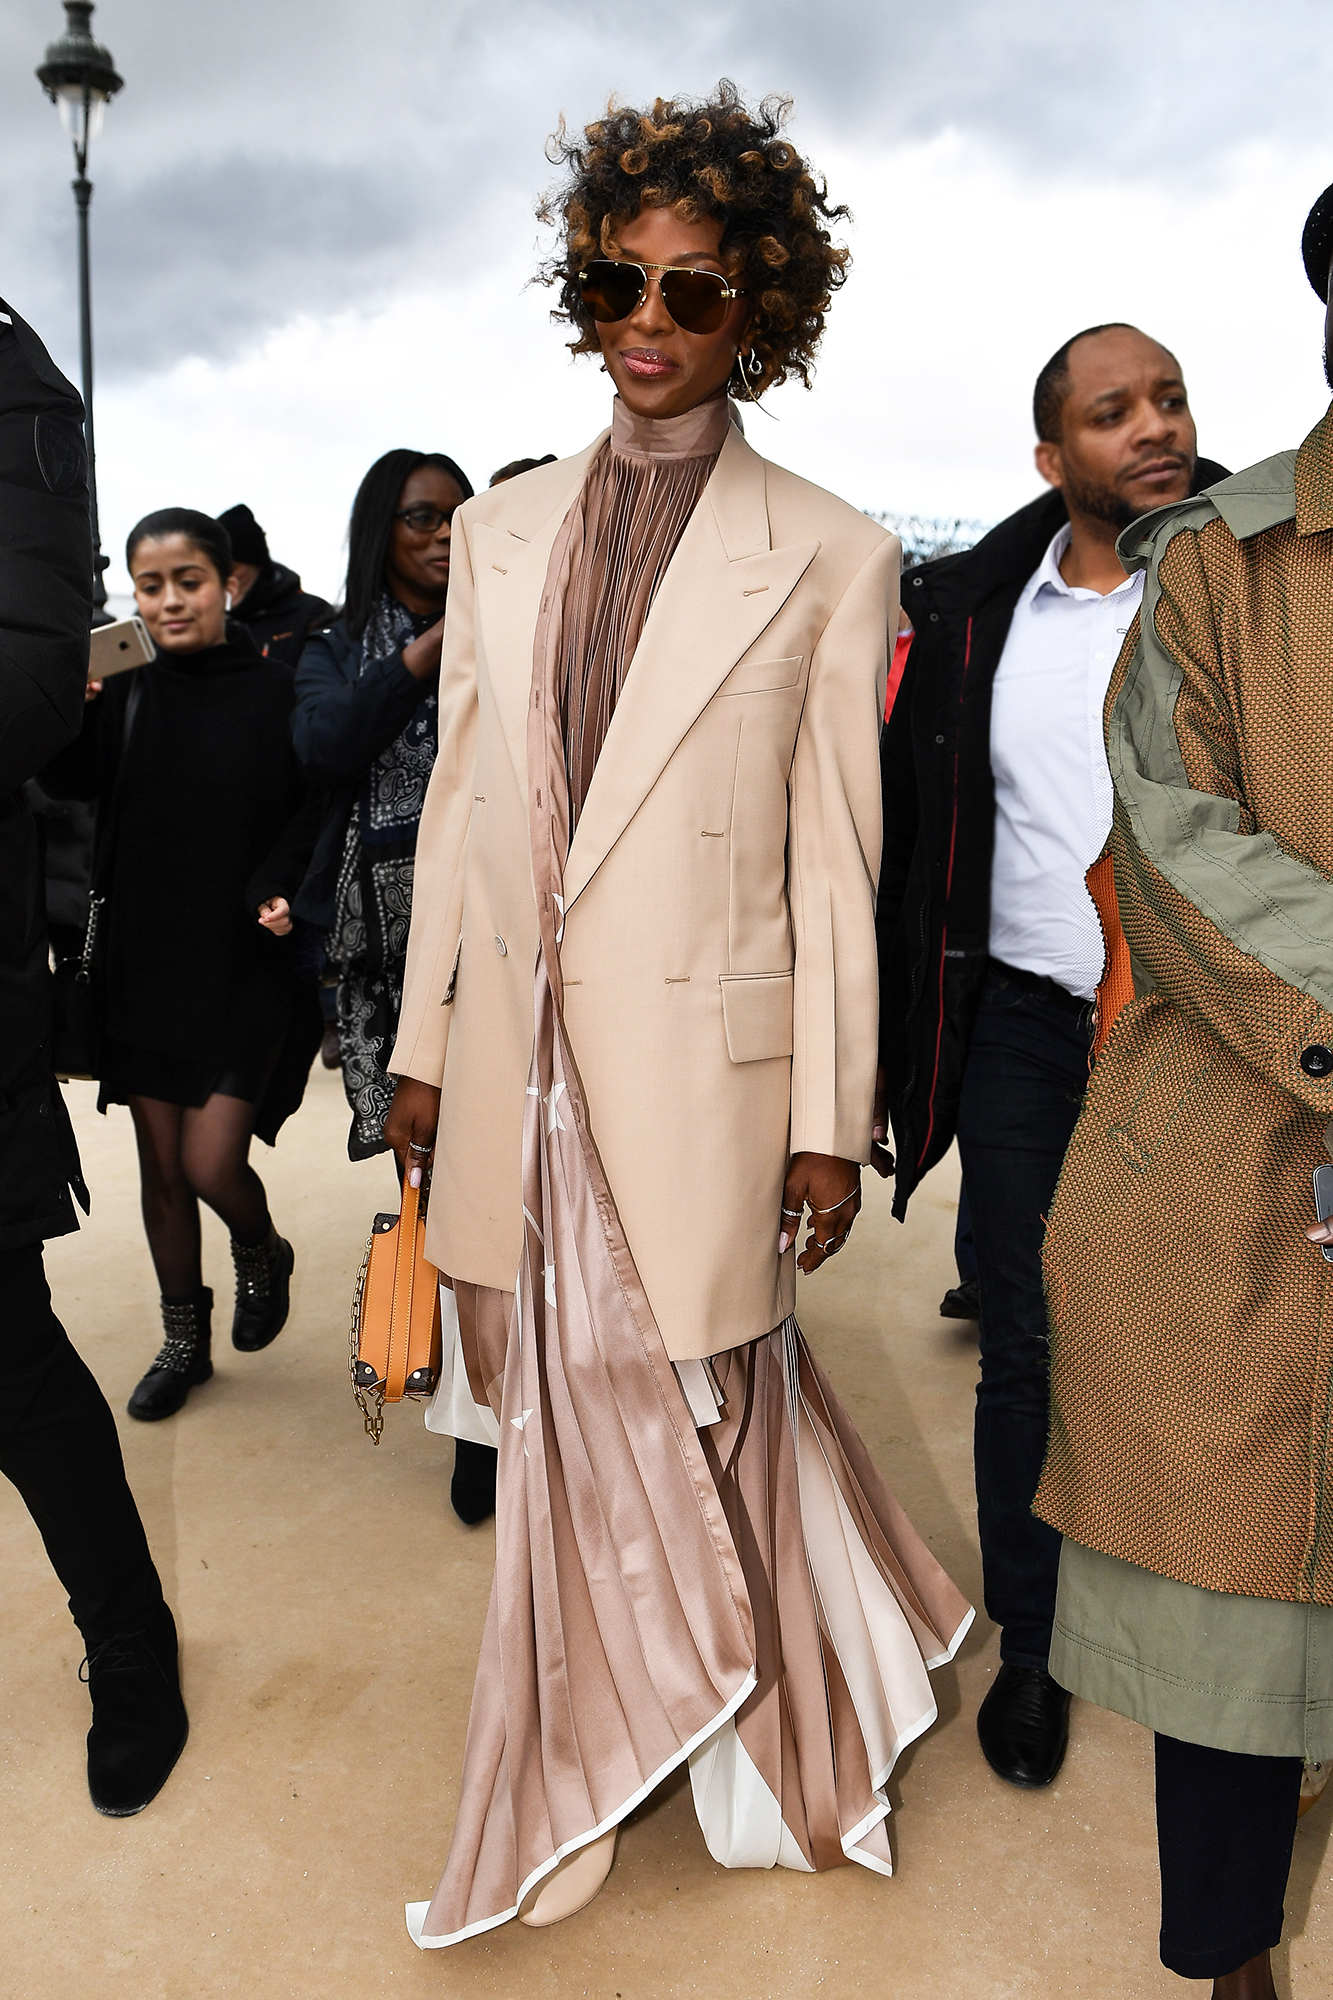 See the Best Celebrity Street Style From Paris Menswear Fall-Winter 2019 Fashion Week - Trading her signature waist-grazing locks for a cropped curly 'do, the OG supermodel stunned in neutrals at the Louis Vuitton show on Thursday, January 17.